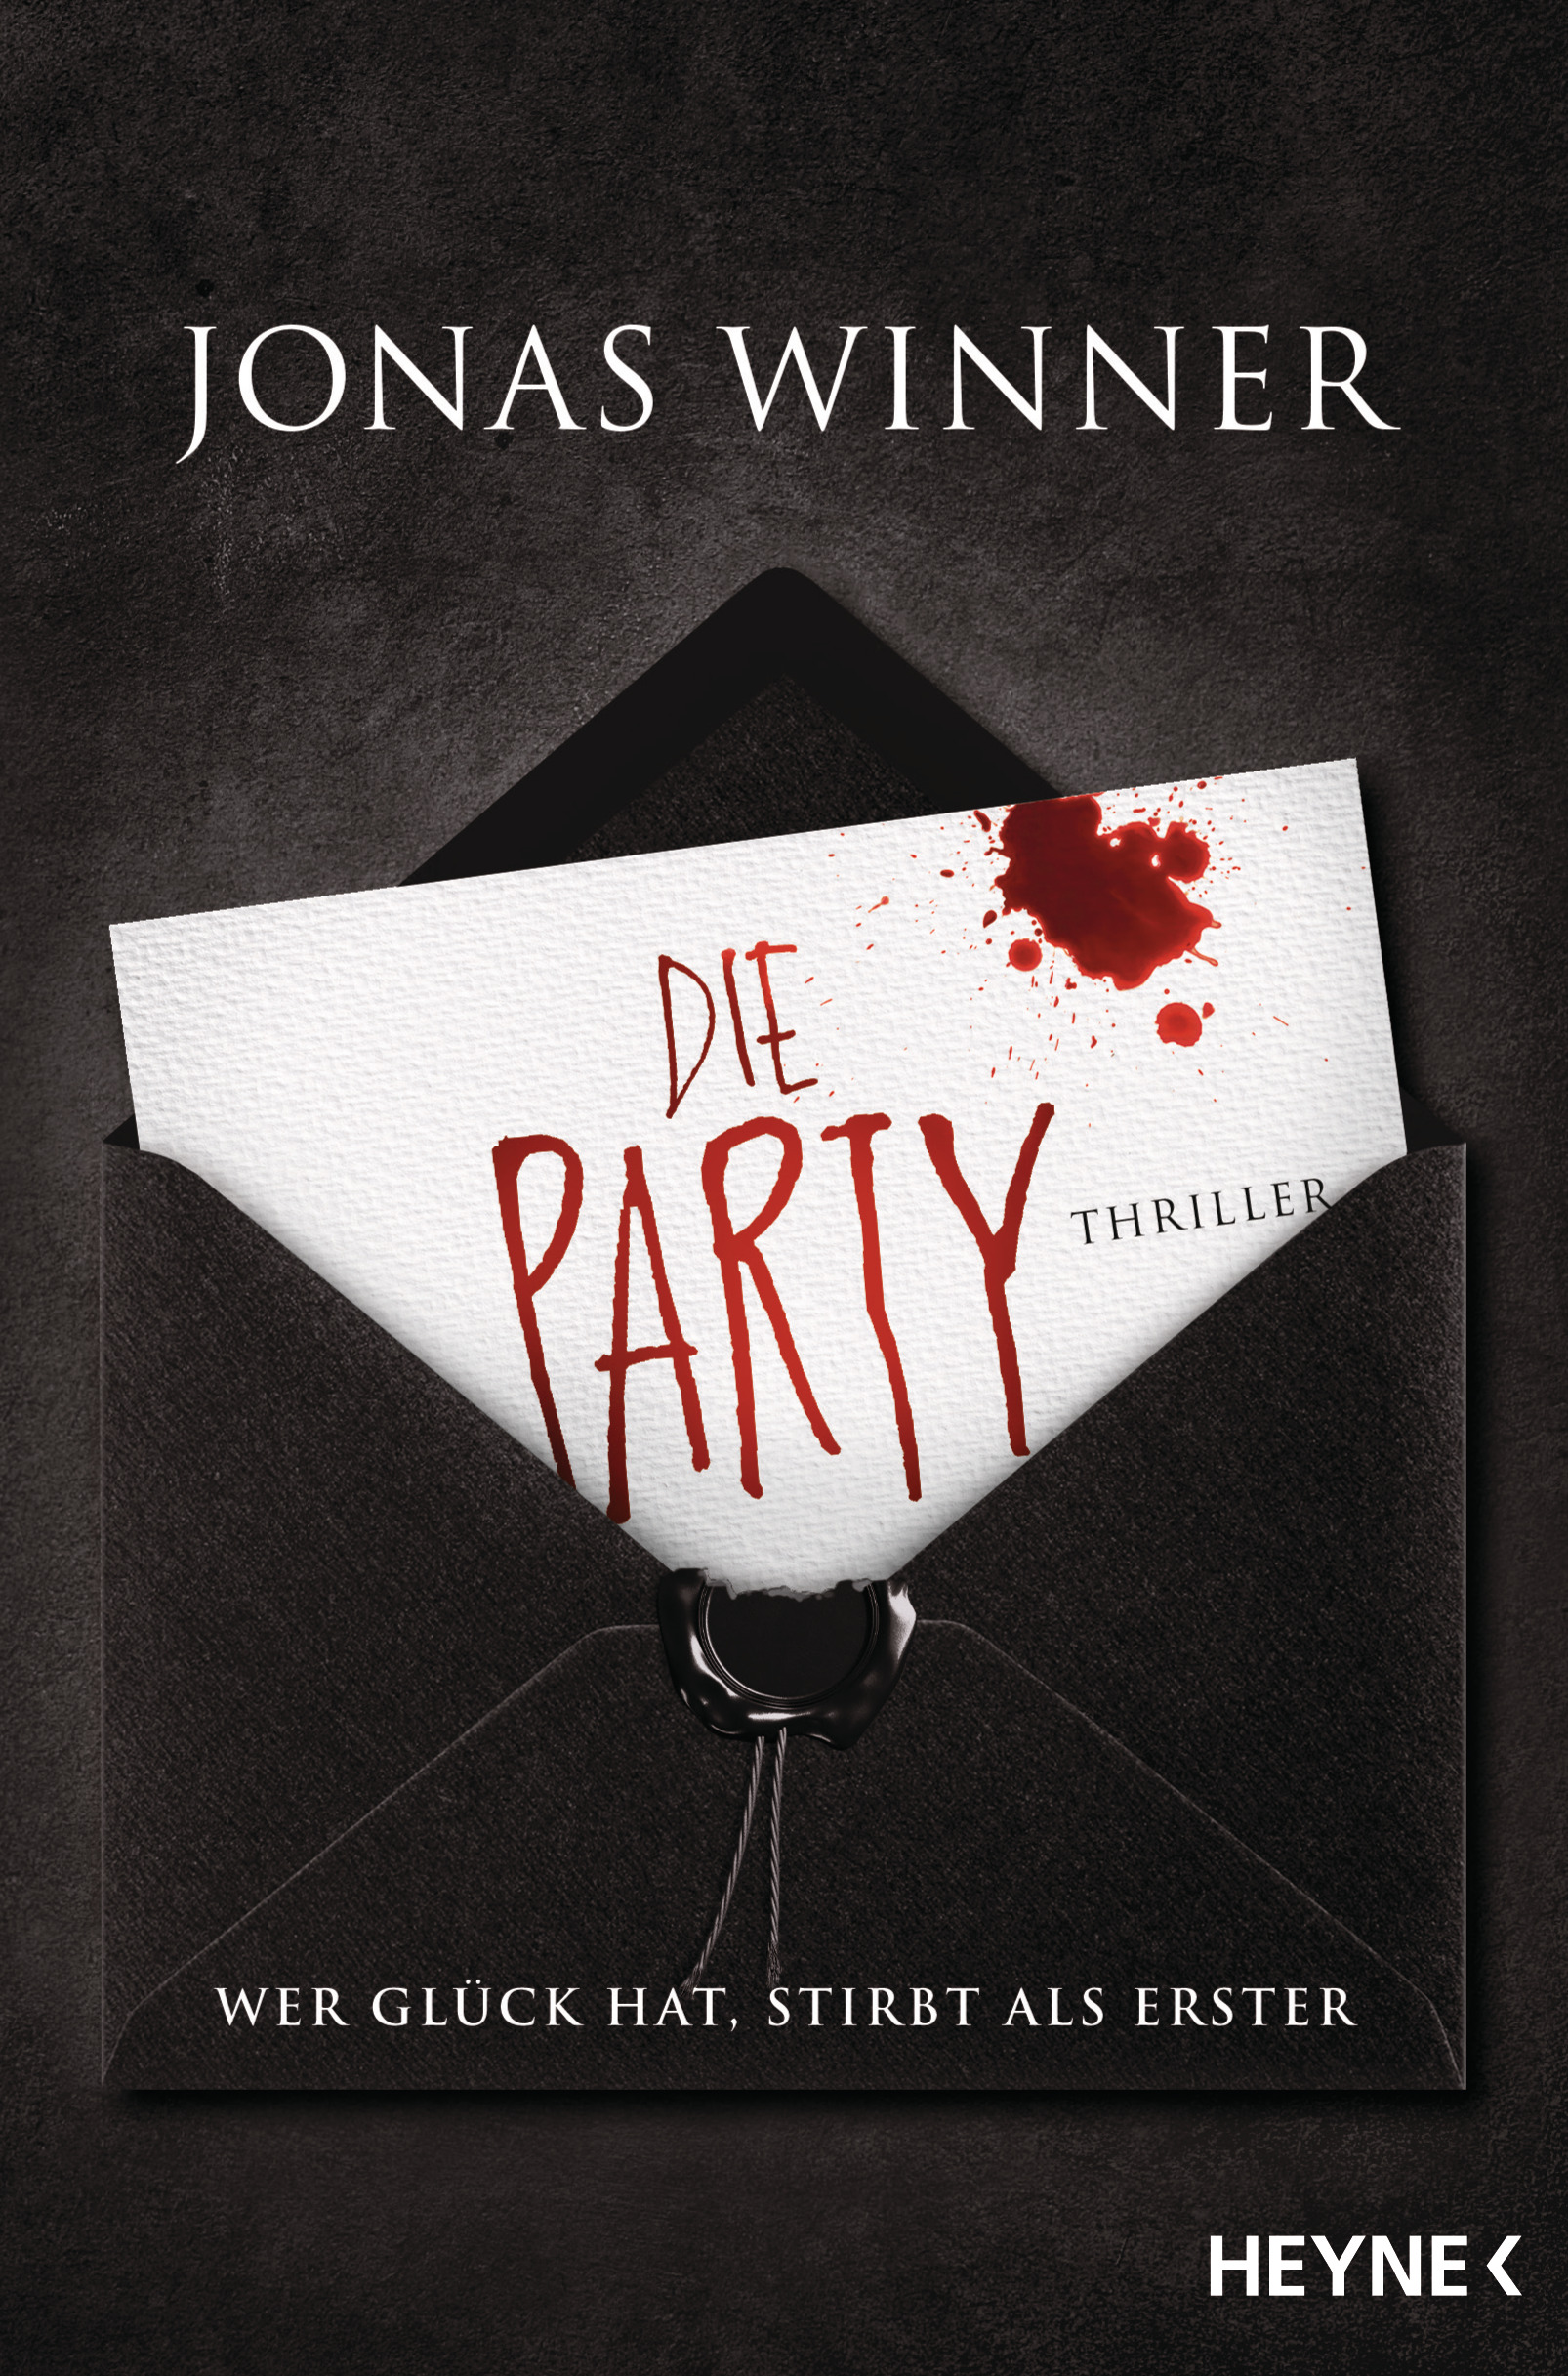 https://www.randomhouse.de/Paperback/Die-Party/Jonas-Winner/Heyne/e528413.rhd